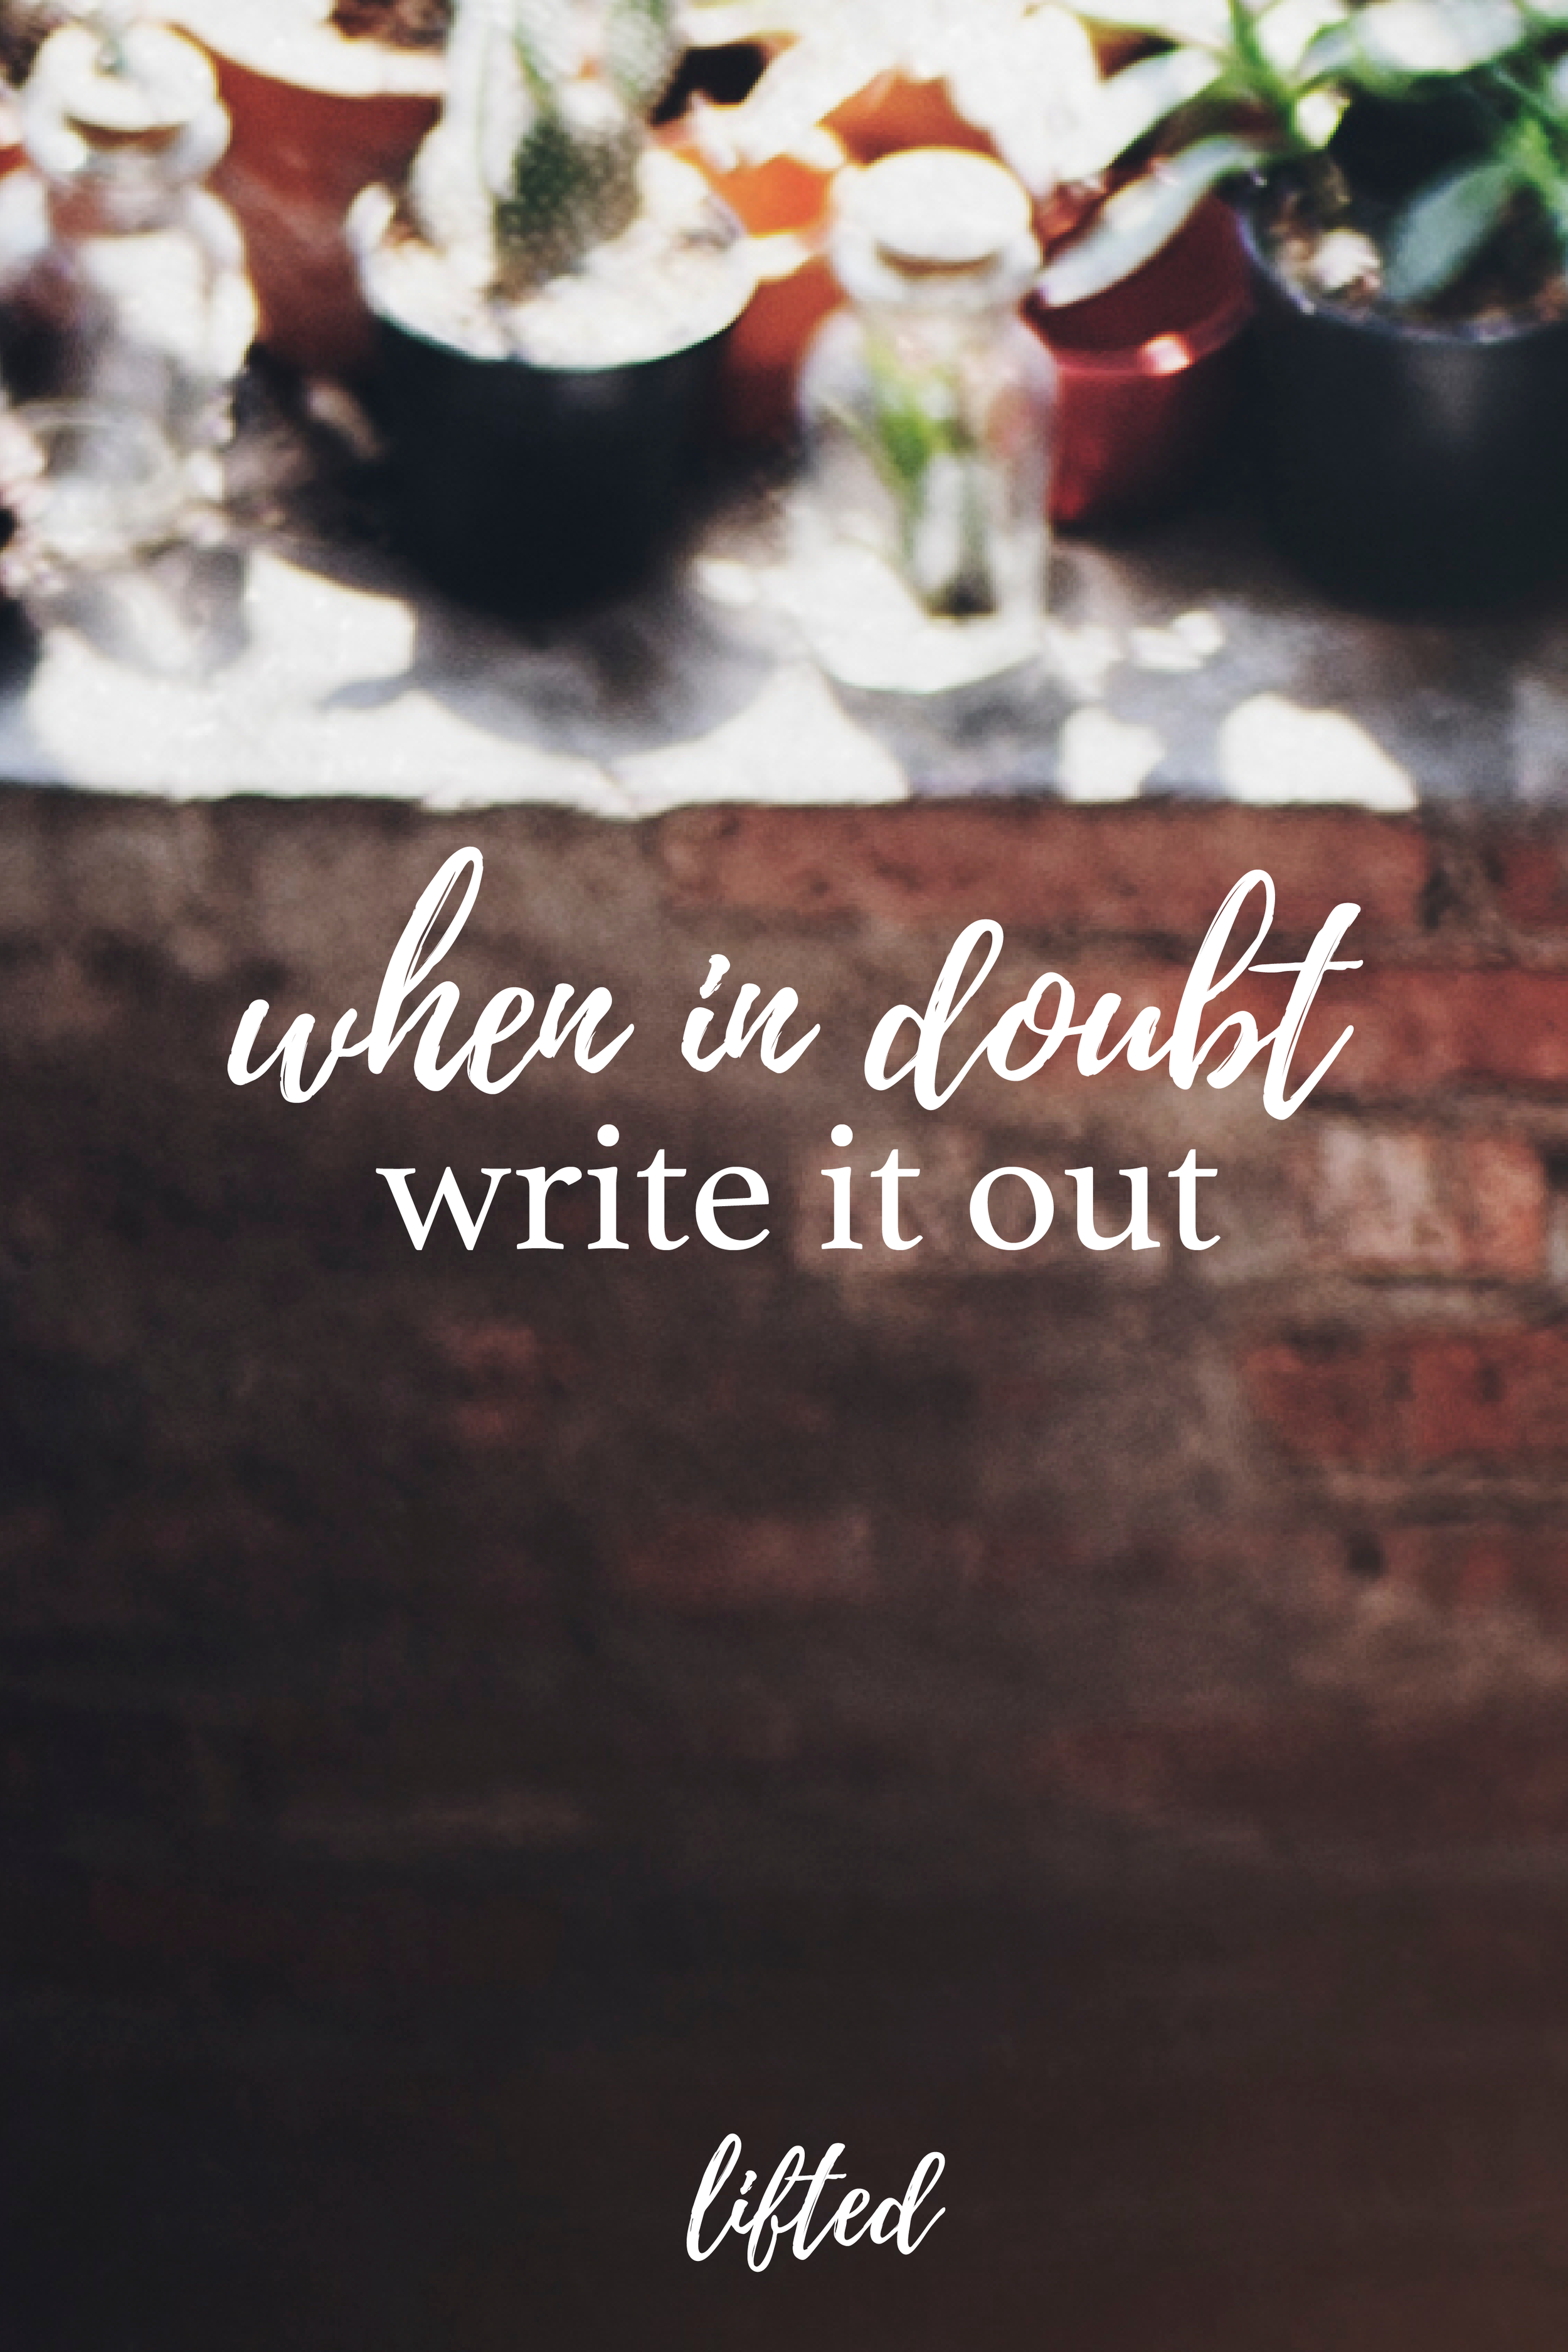 when in doubt - write it out - LIFTED